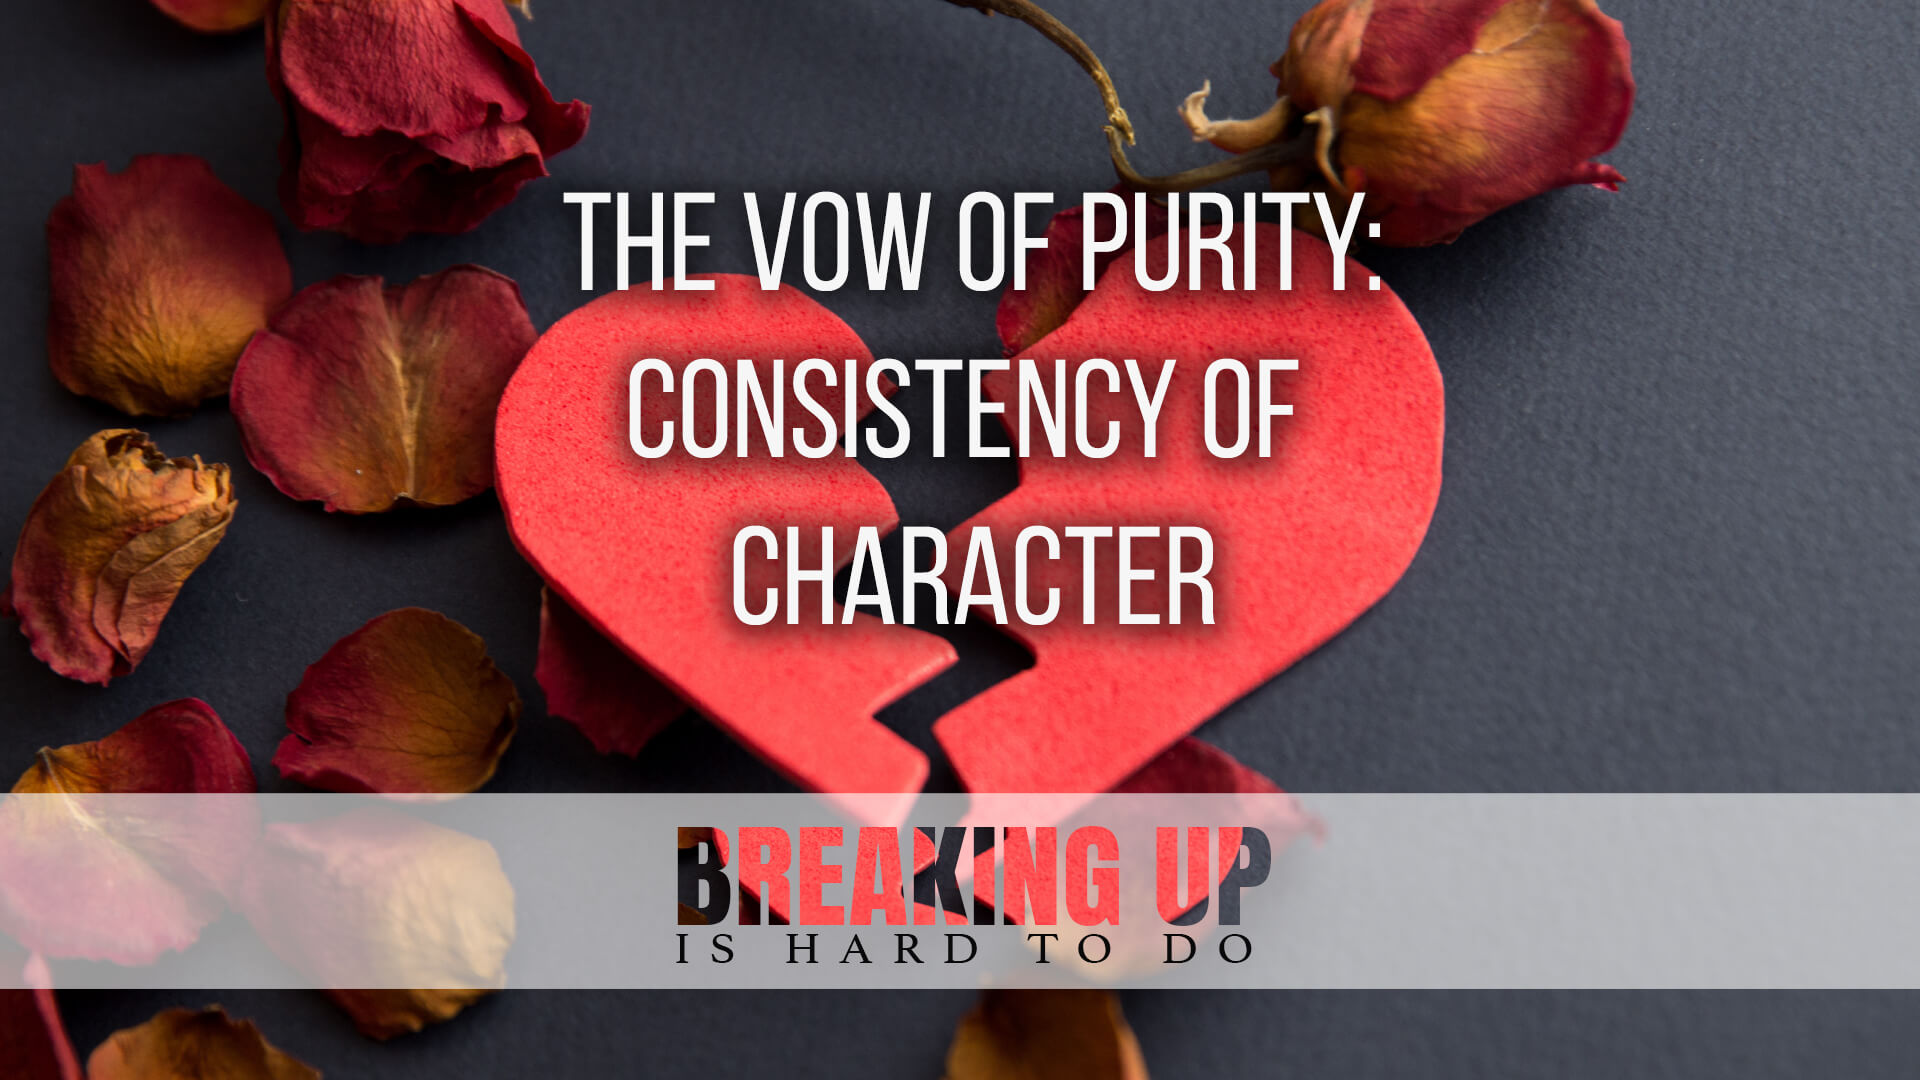 The Vow of Purity: Consistency of Character